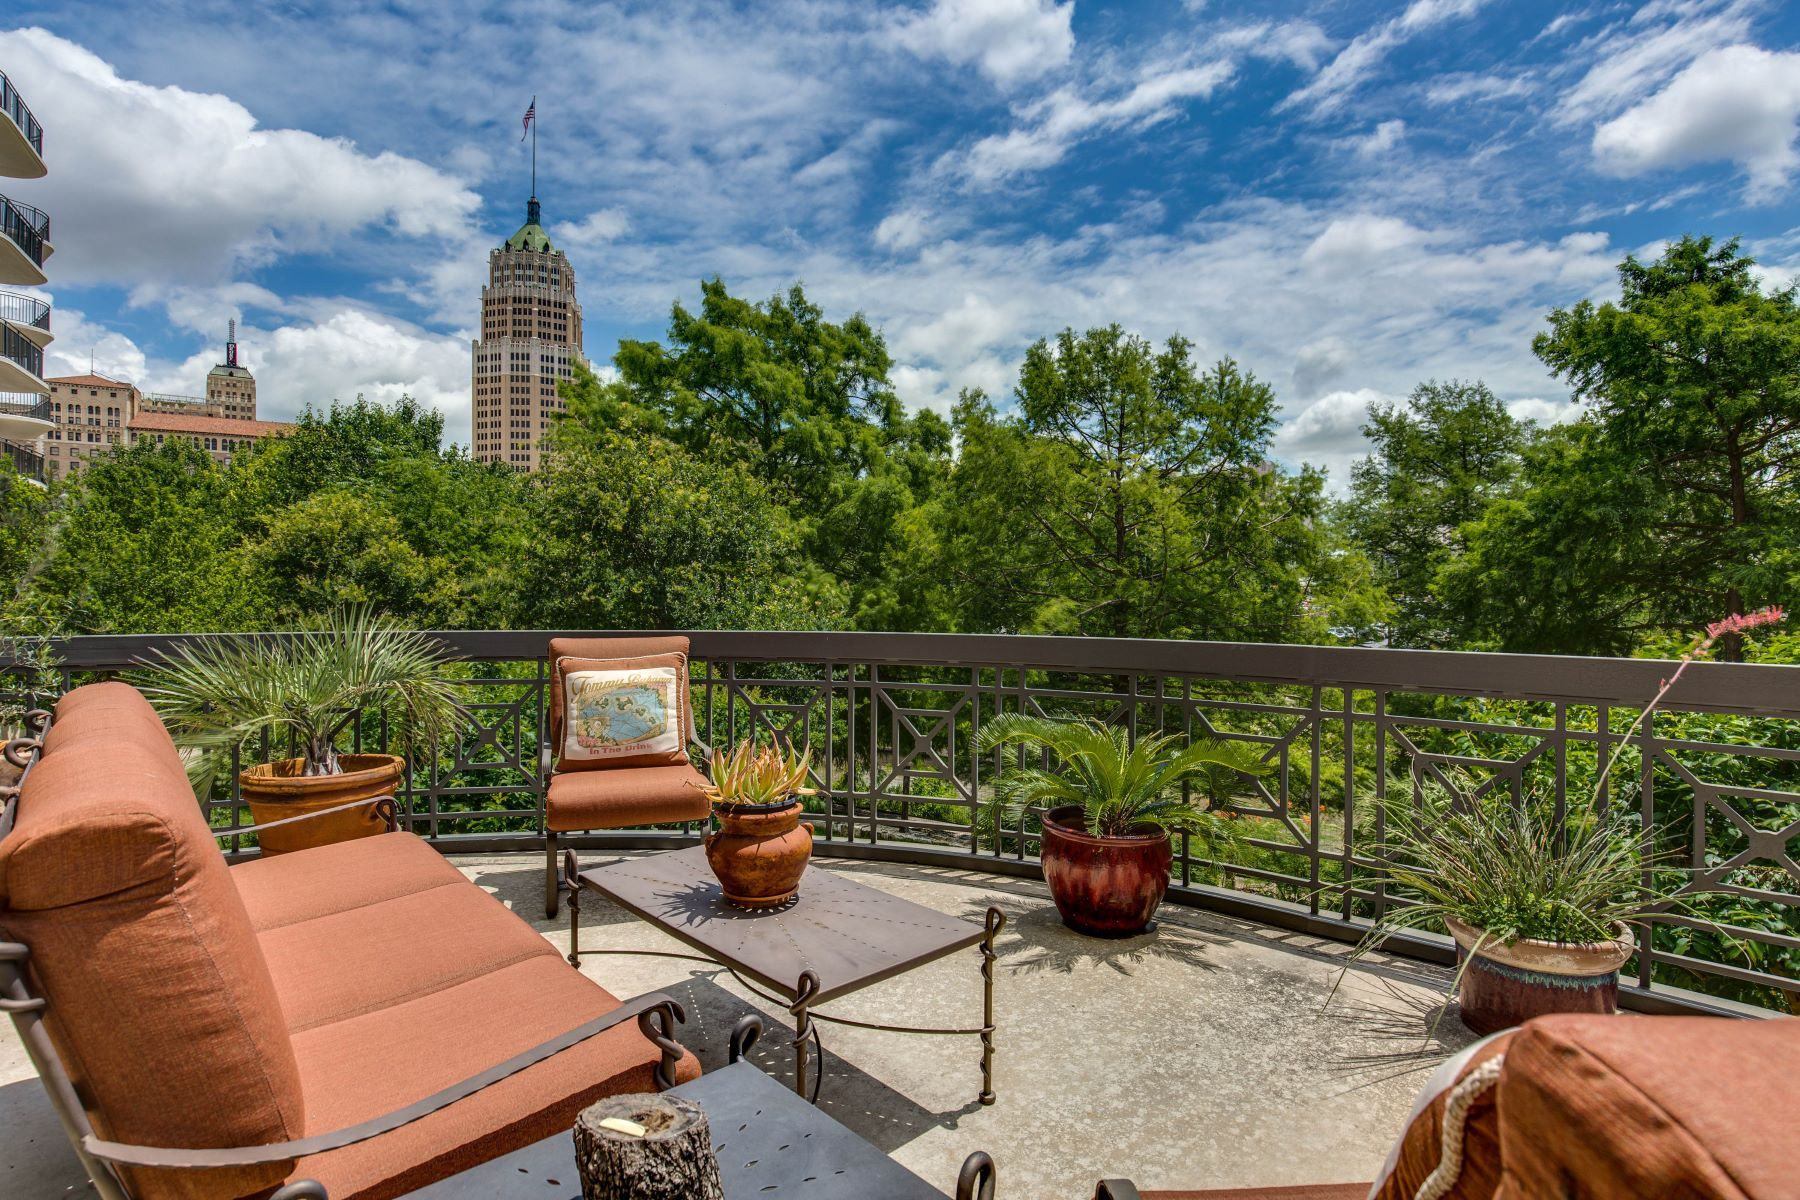 شقة بعمارة للـ Rent في Penthouse Style on the Riverwalk 230 Dwyer Ave 101, San Antonio, Texas, 78204 United States